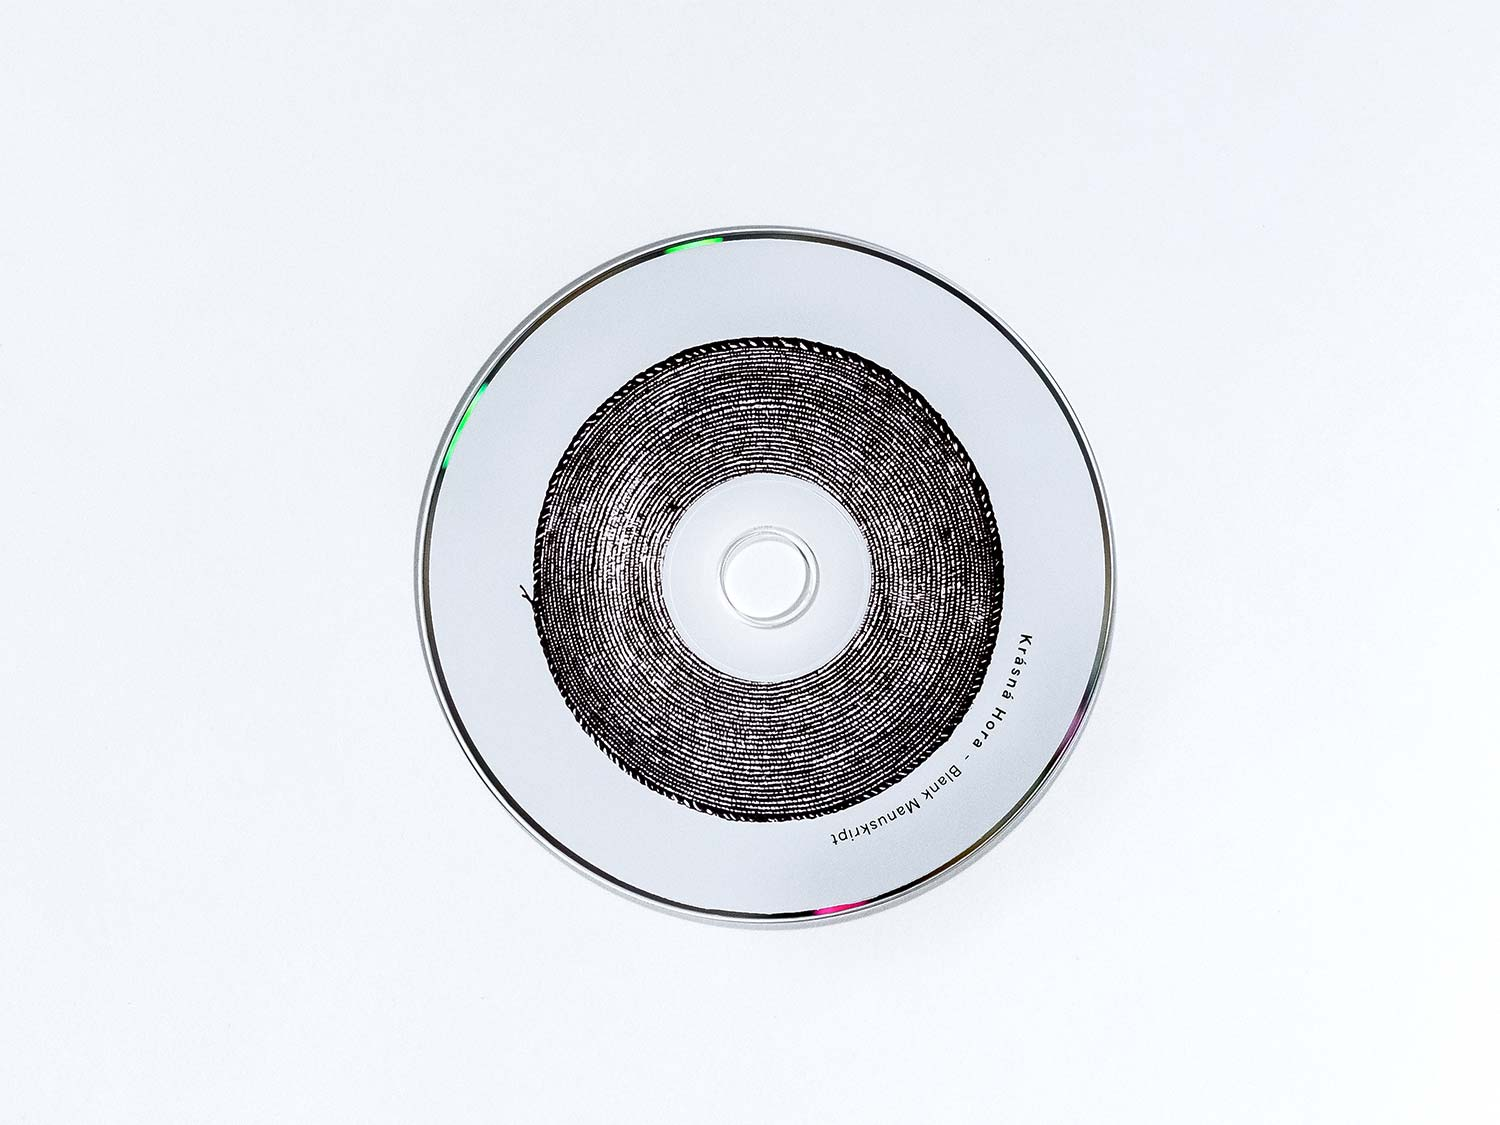 The picture shows the cd of Blank Manuskript's release Krasna Hora.